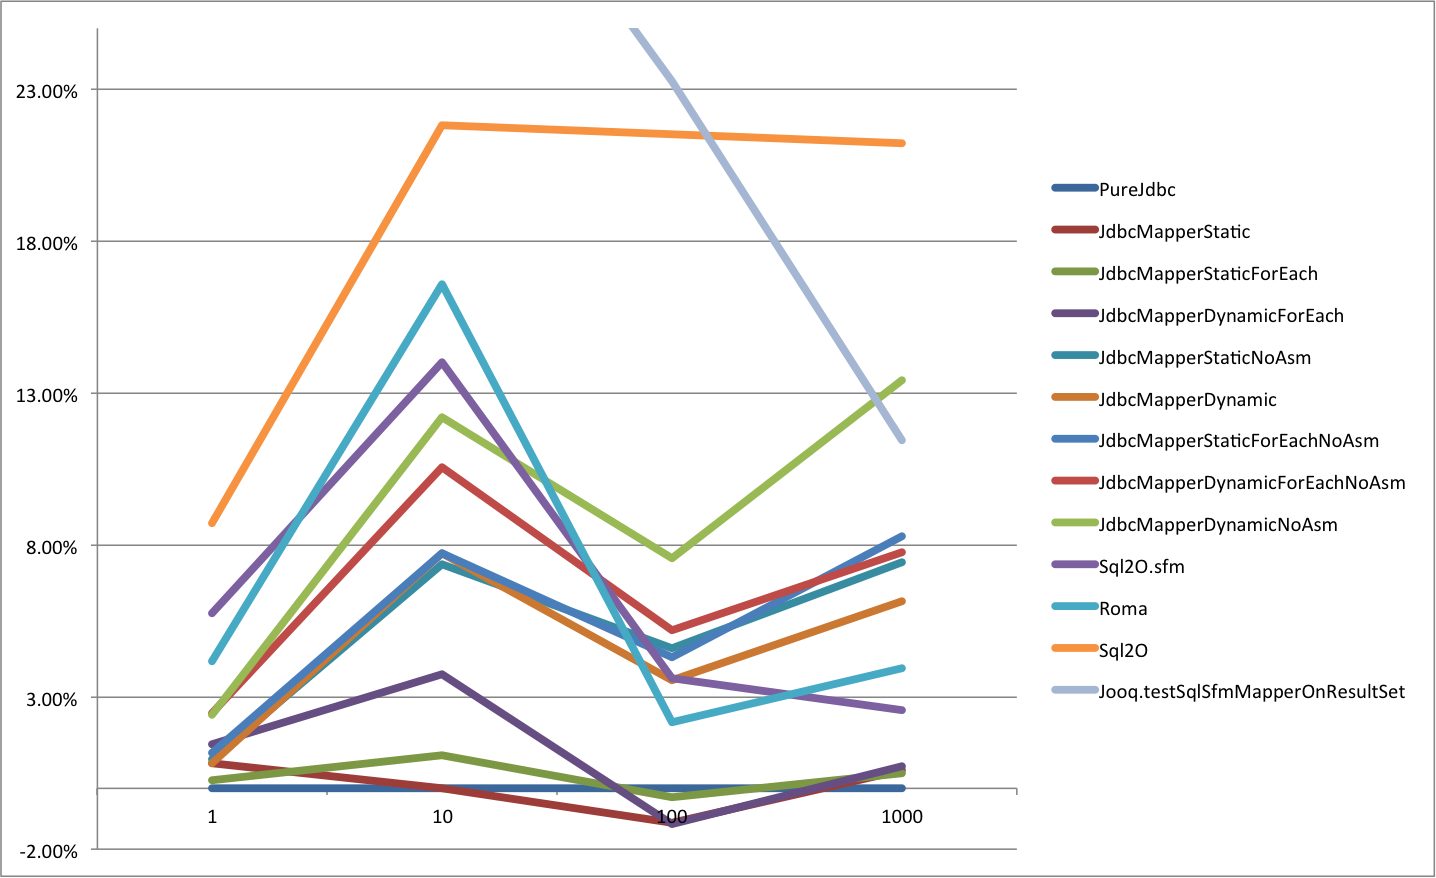 HsqlDb Average time difference to PureJdbc Top5